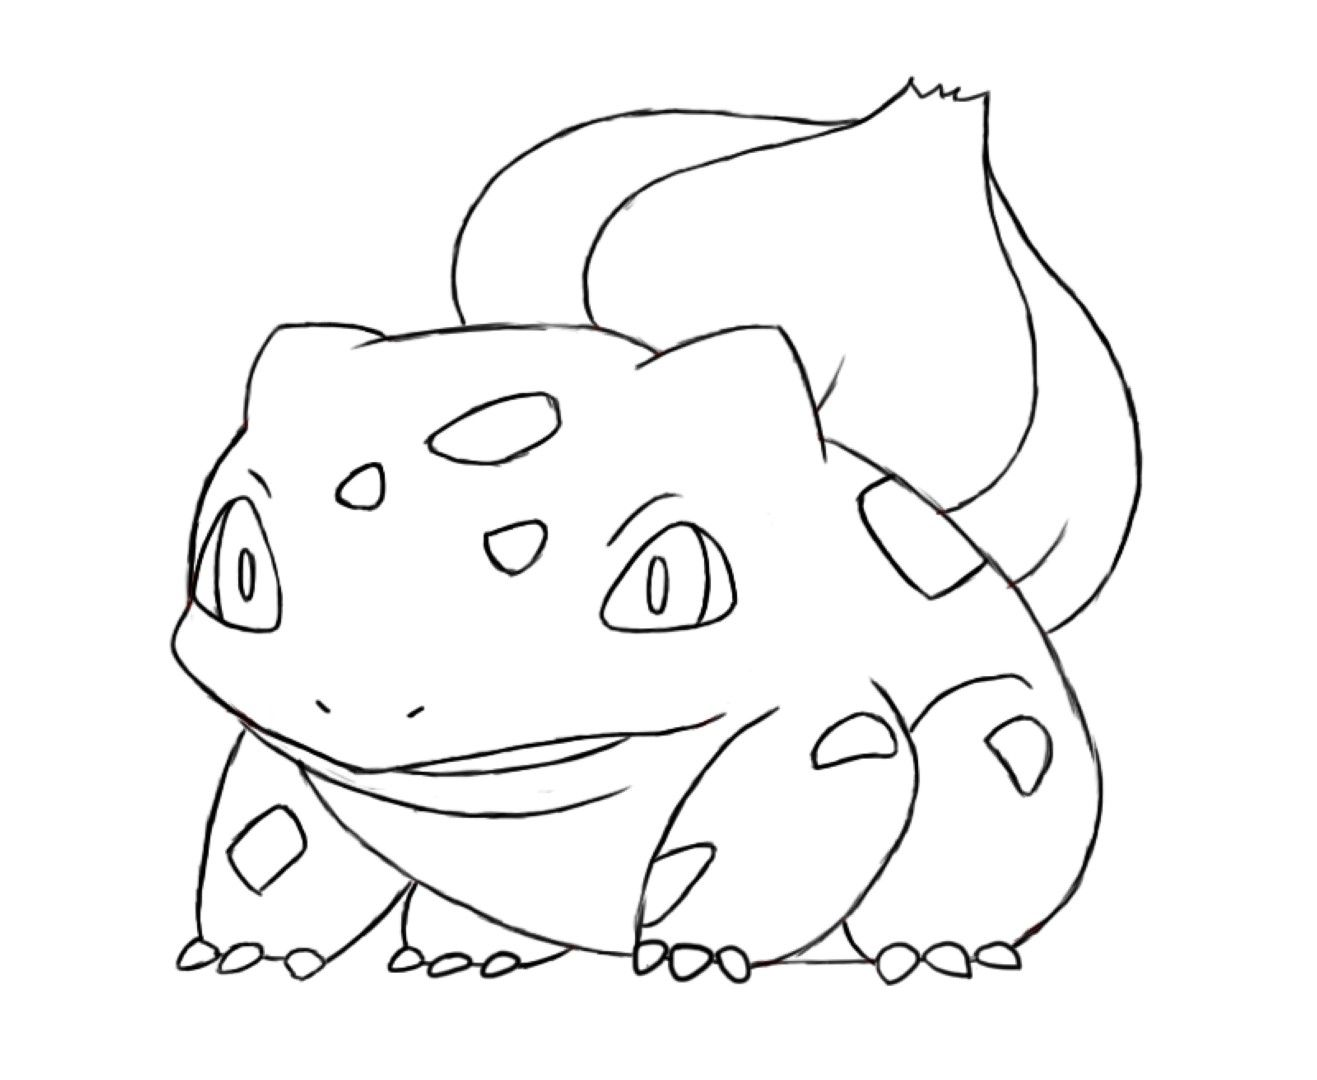 Bulbasaur Coloring Page Coloring Home Bulbasaur Coloring Pages